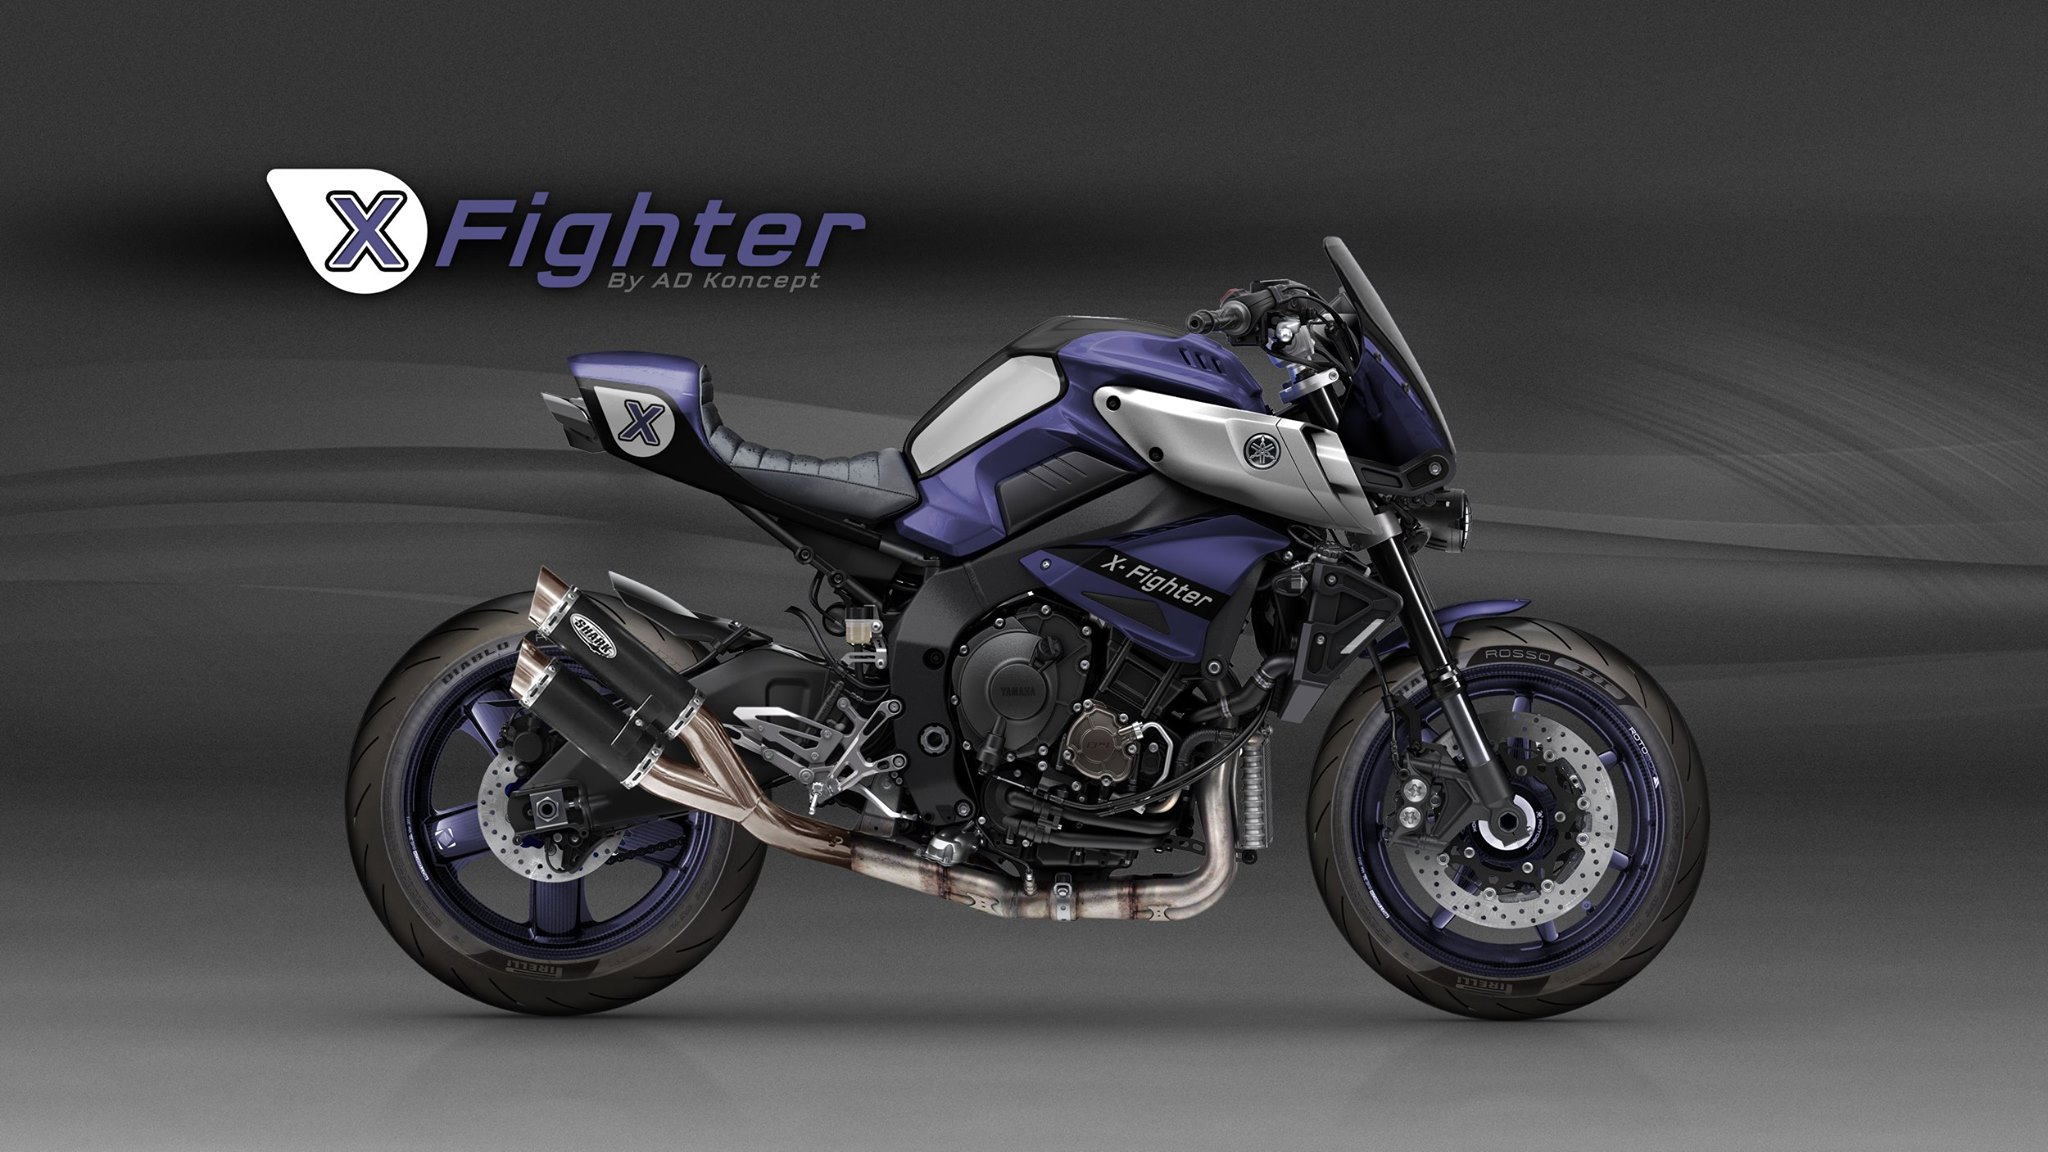 Yamaha Mt 10 In Valentino Rossi Livery And More From Ad